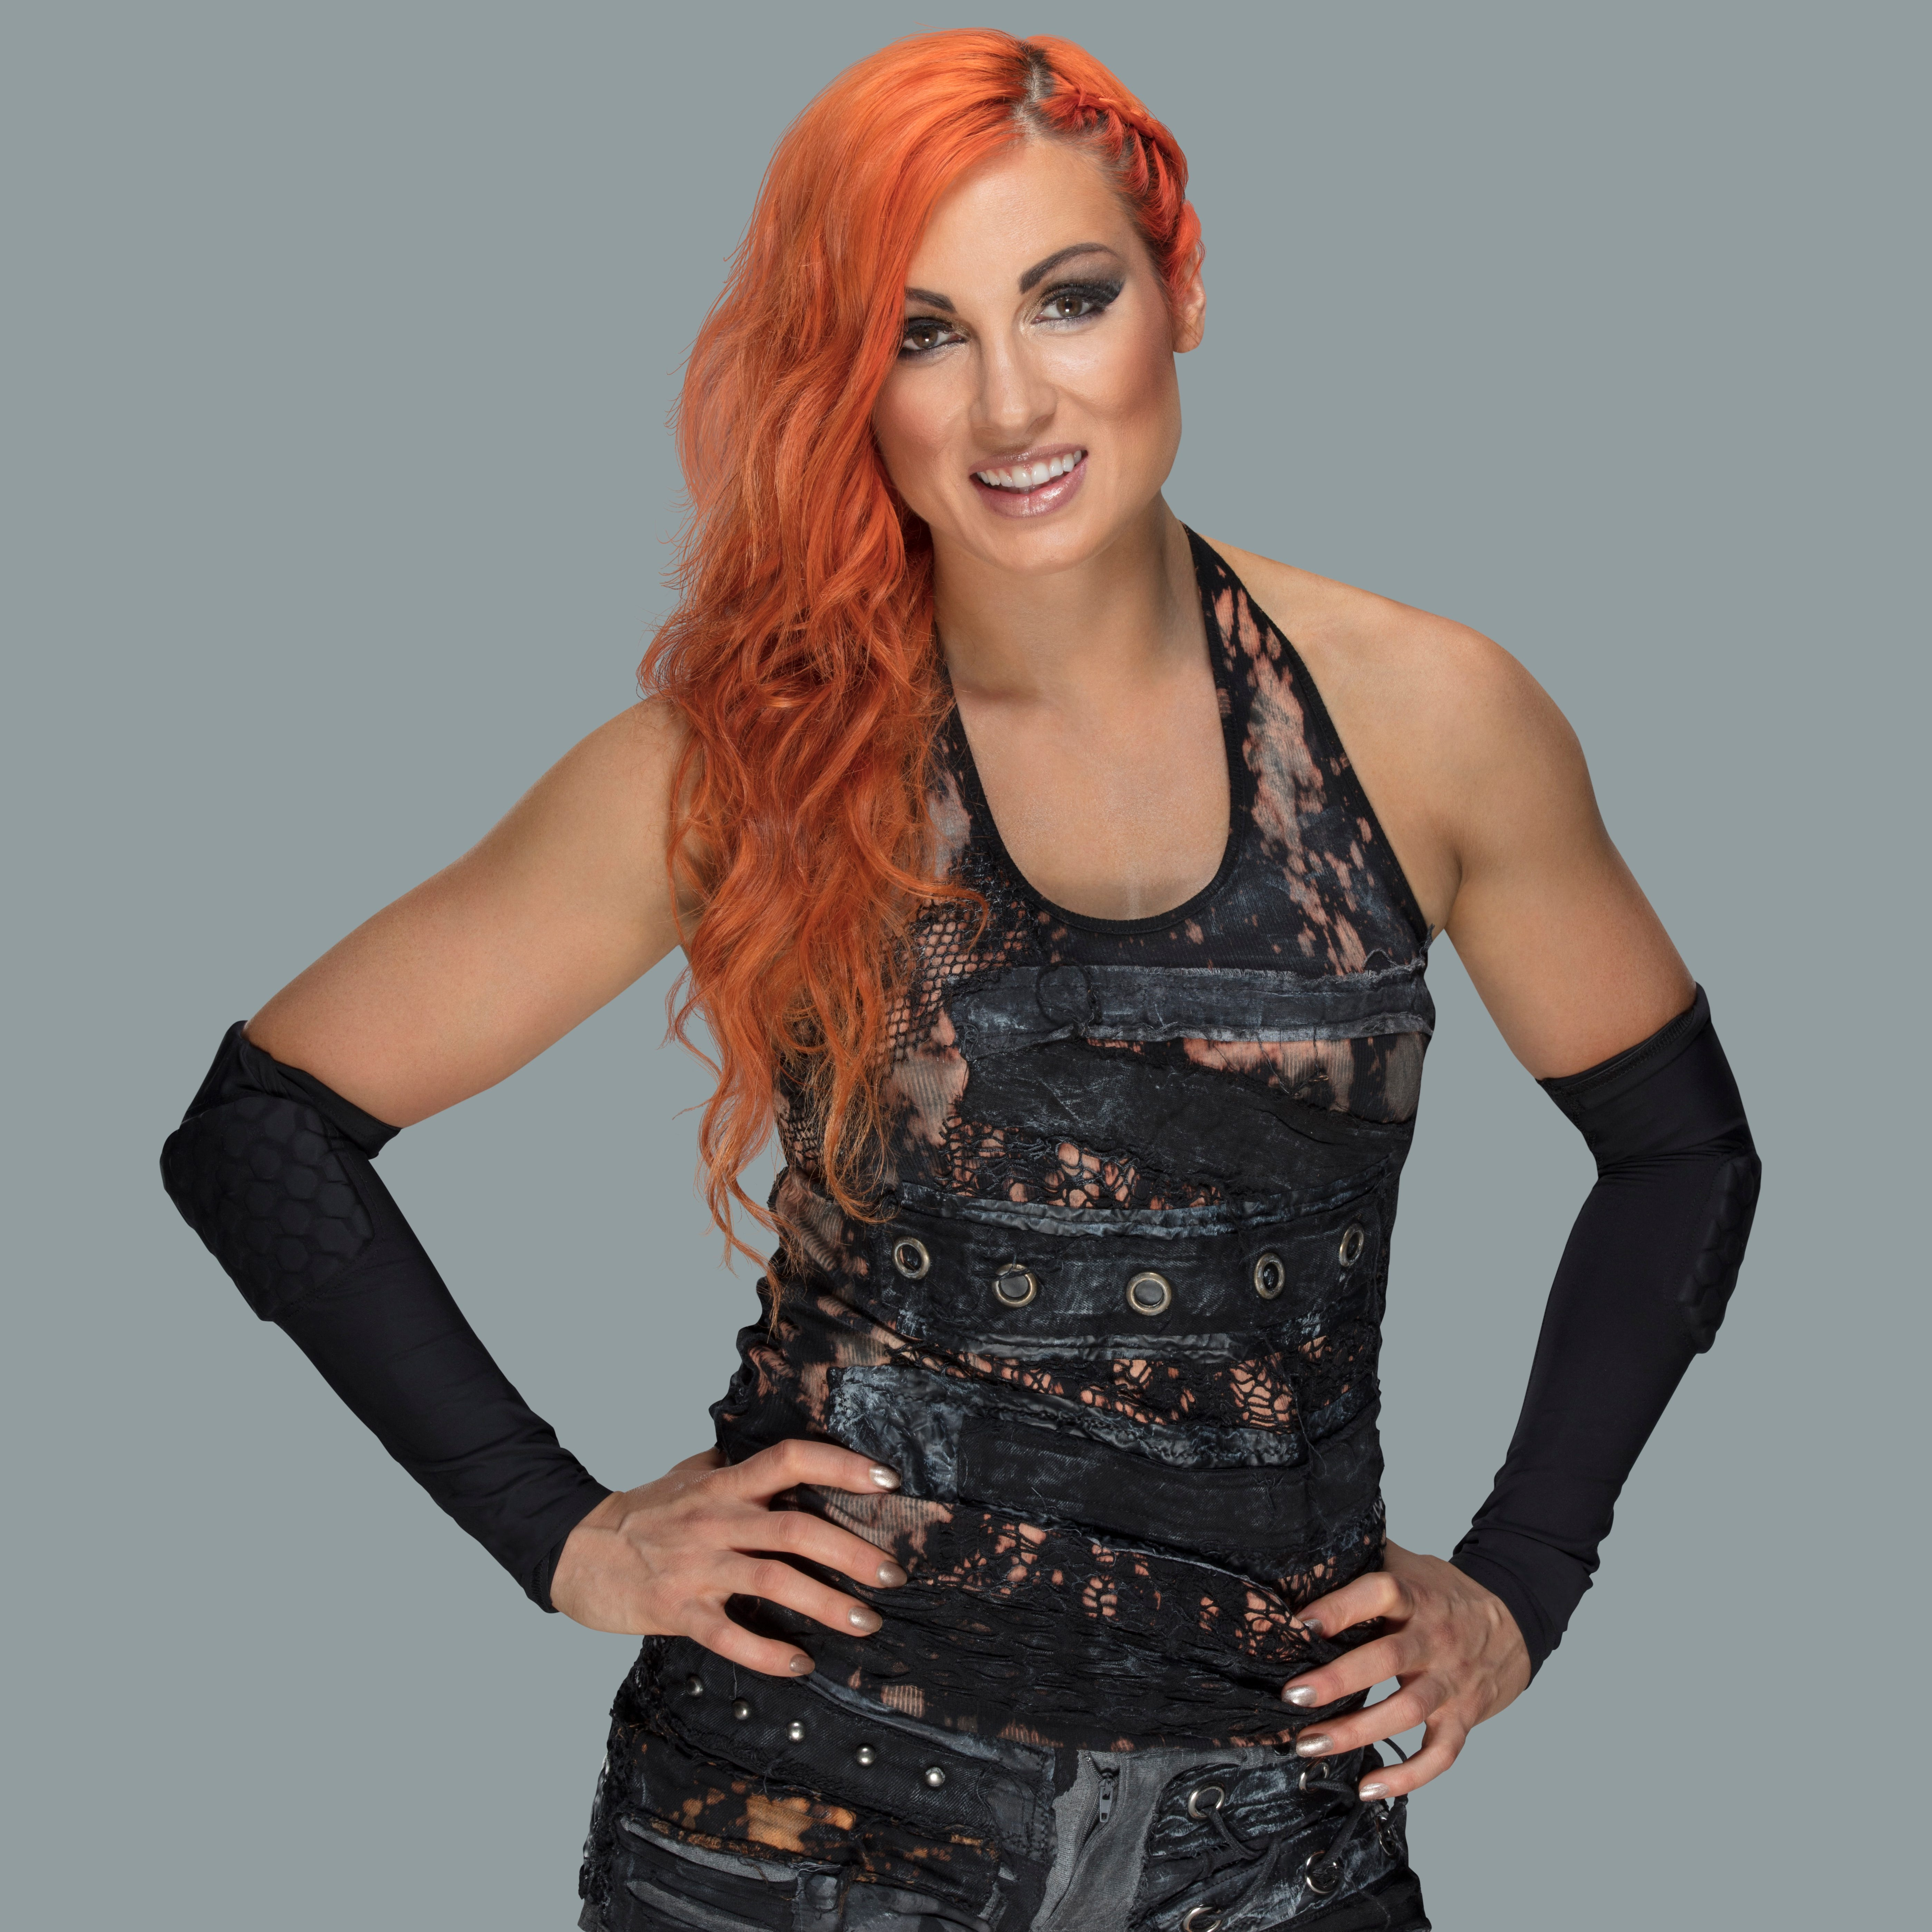 WWE champ Becky Lynch wants to main event WrestleMania 35 in NJ